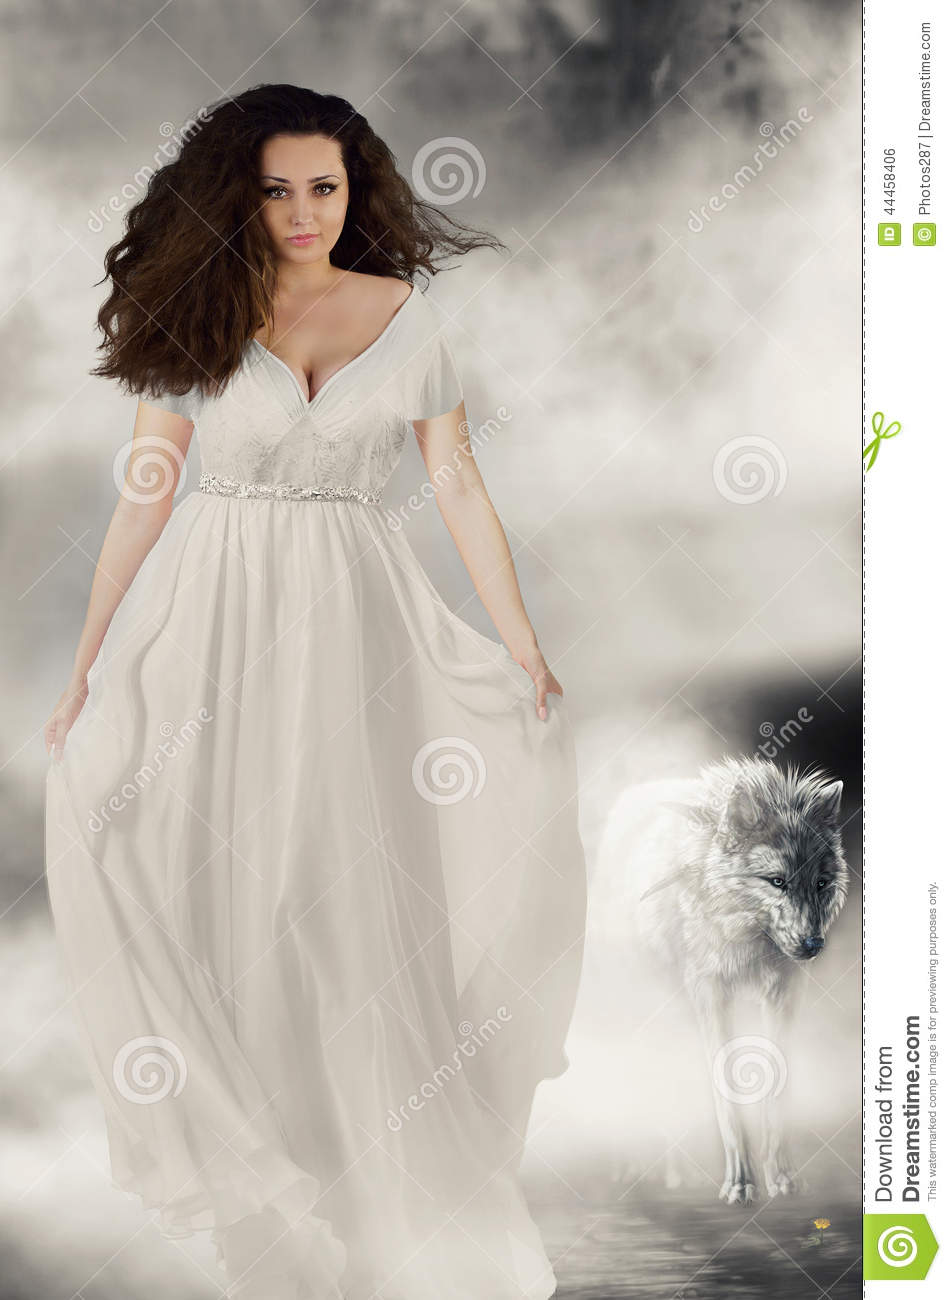 Book Cover White Girl ~ Beautiful girl in white dress with wolf book cover